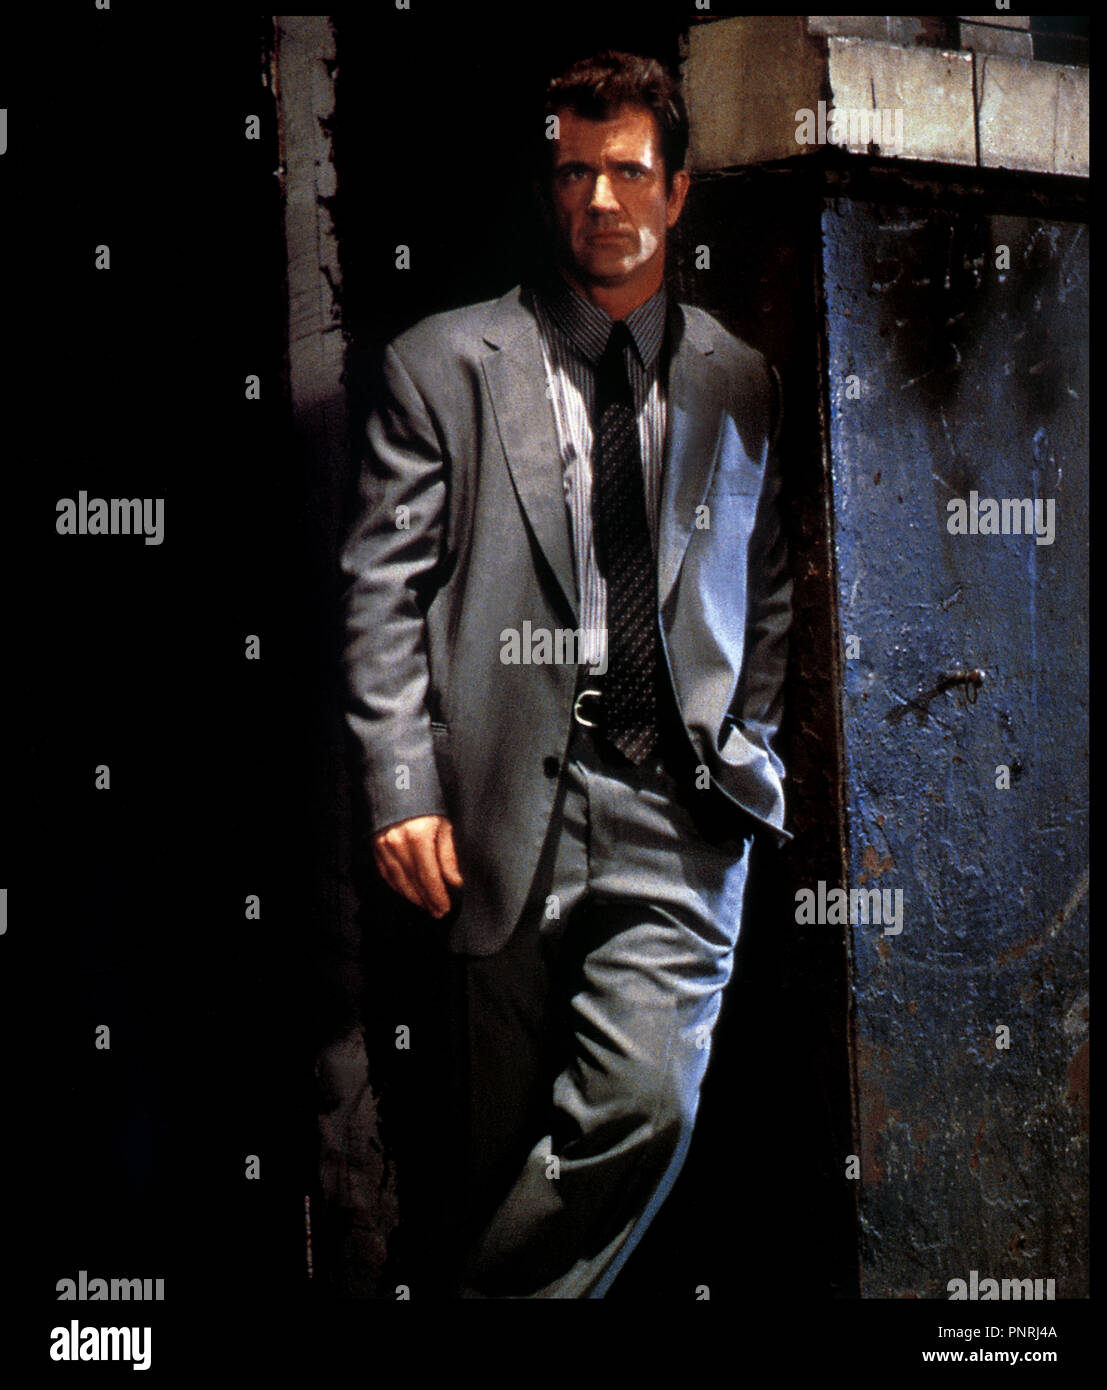 payback 1999 mel gibson stock photos payback 1999 mel gibson stock images alamy. Black Bedroom Furniture Sets. Home Design Ideas